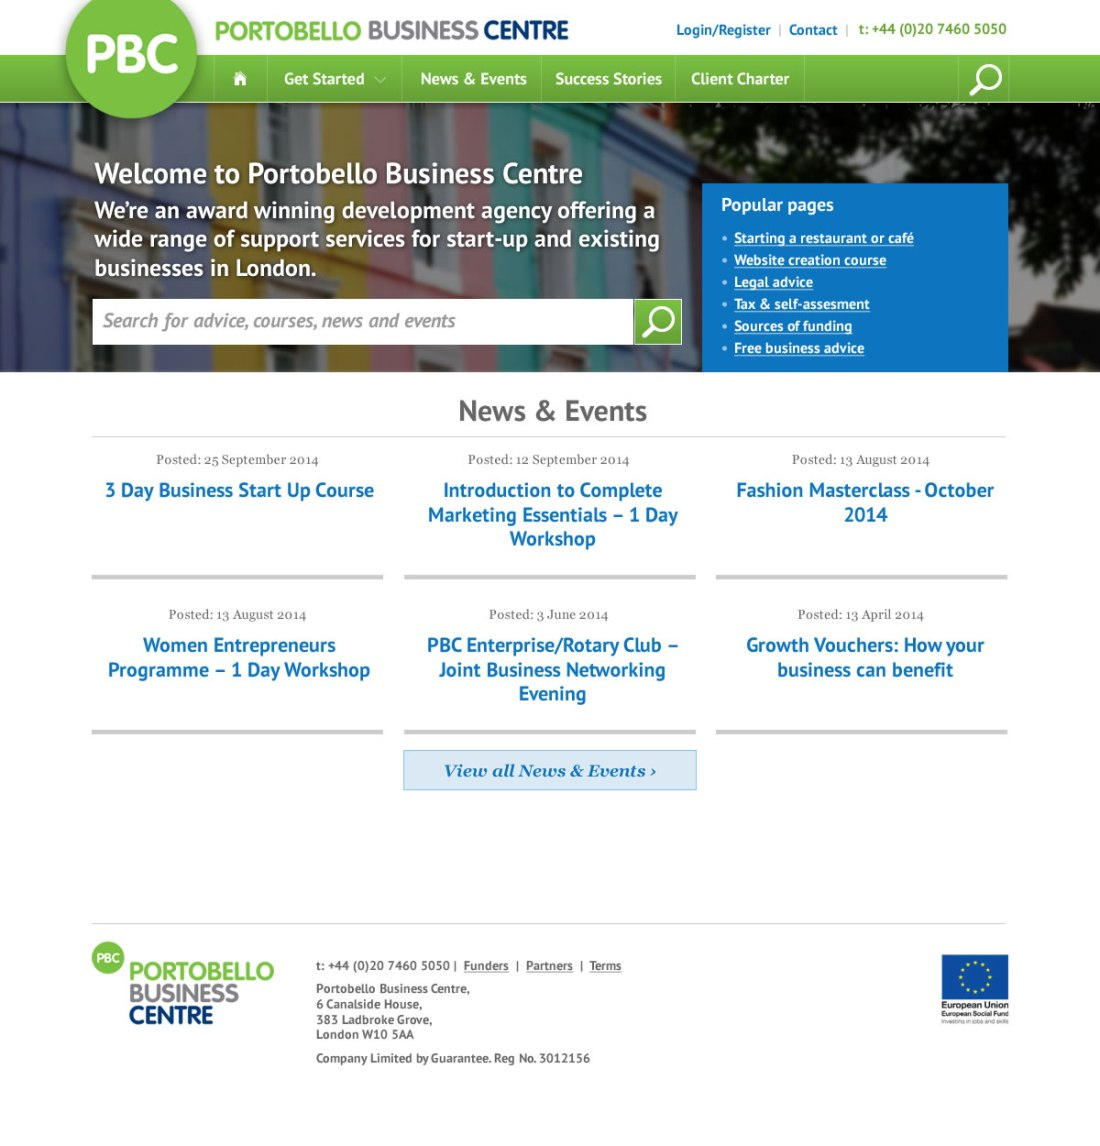 Website design for the Portobello Business Centre